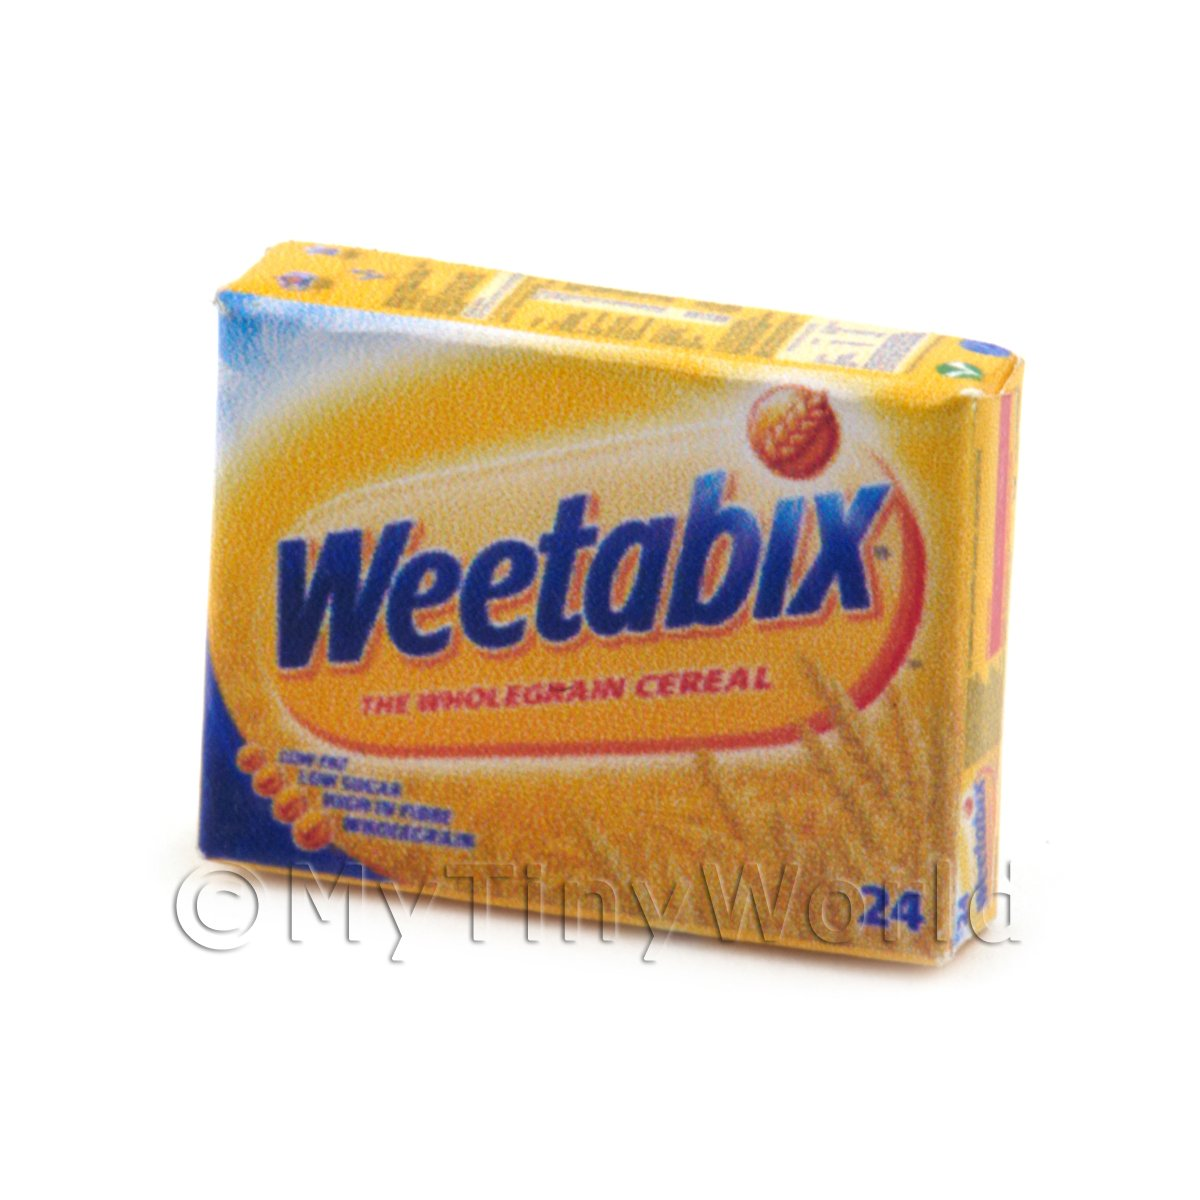 Price of weetabix